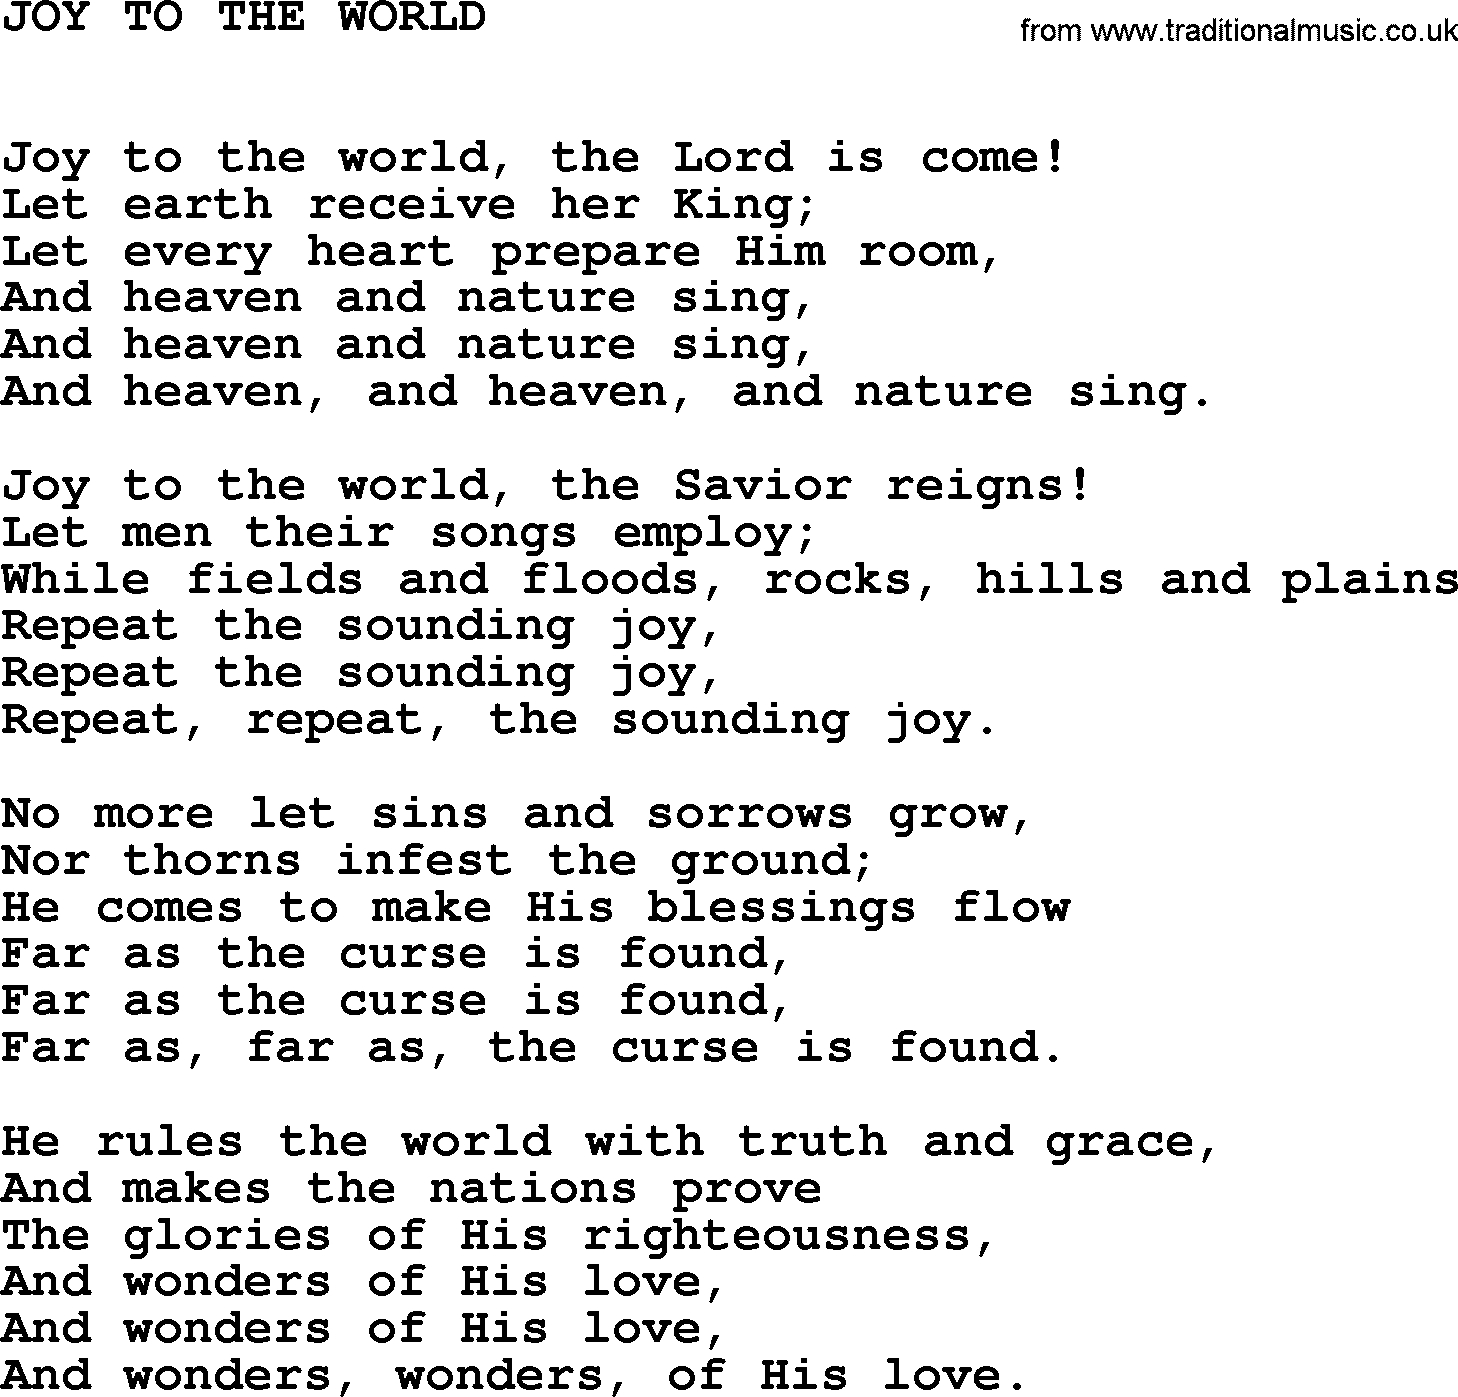 Joy To The World Chords Johnny Cash Song Joy To The World Lyrics